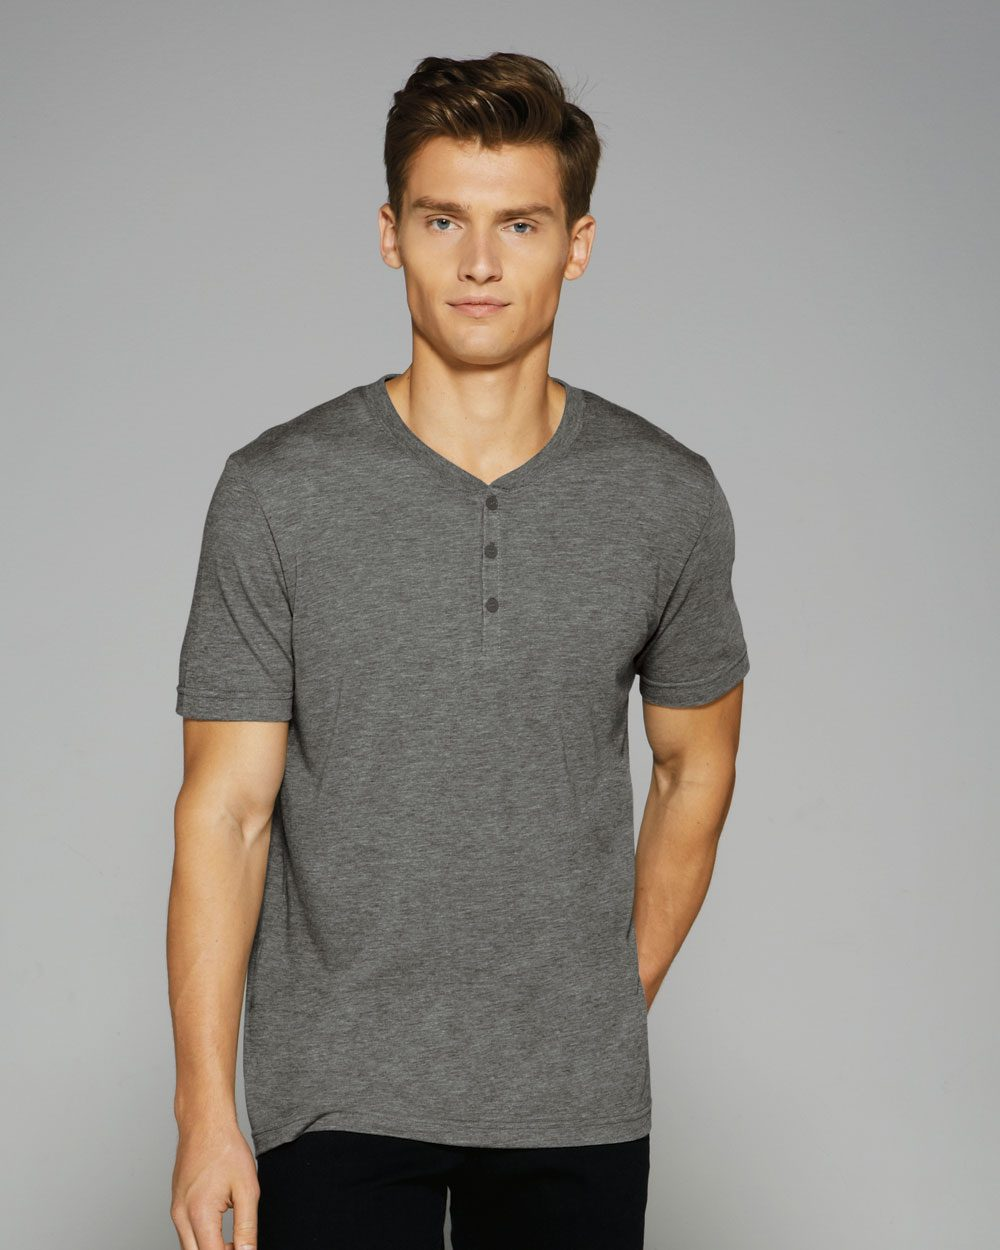 702286b803f6 Canvas 3125 - Short Sleeve Henley $10.60 - Men's T-Shirts